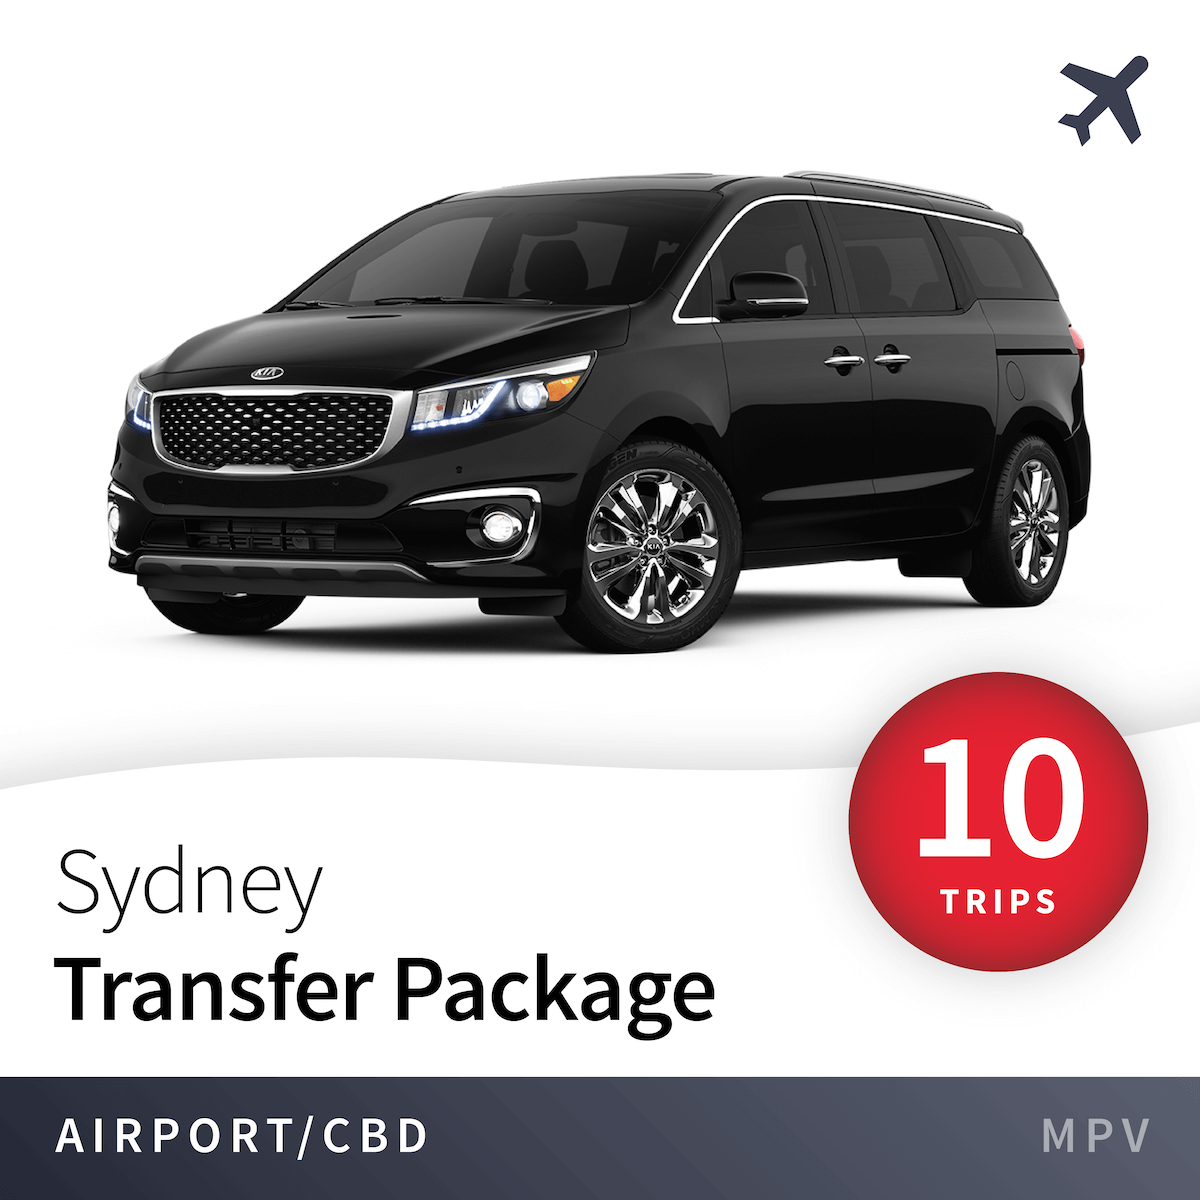 Sydney Airport Transfer Package - MPV (10 Trips) 10